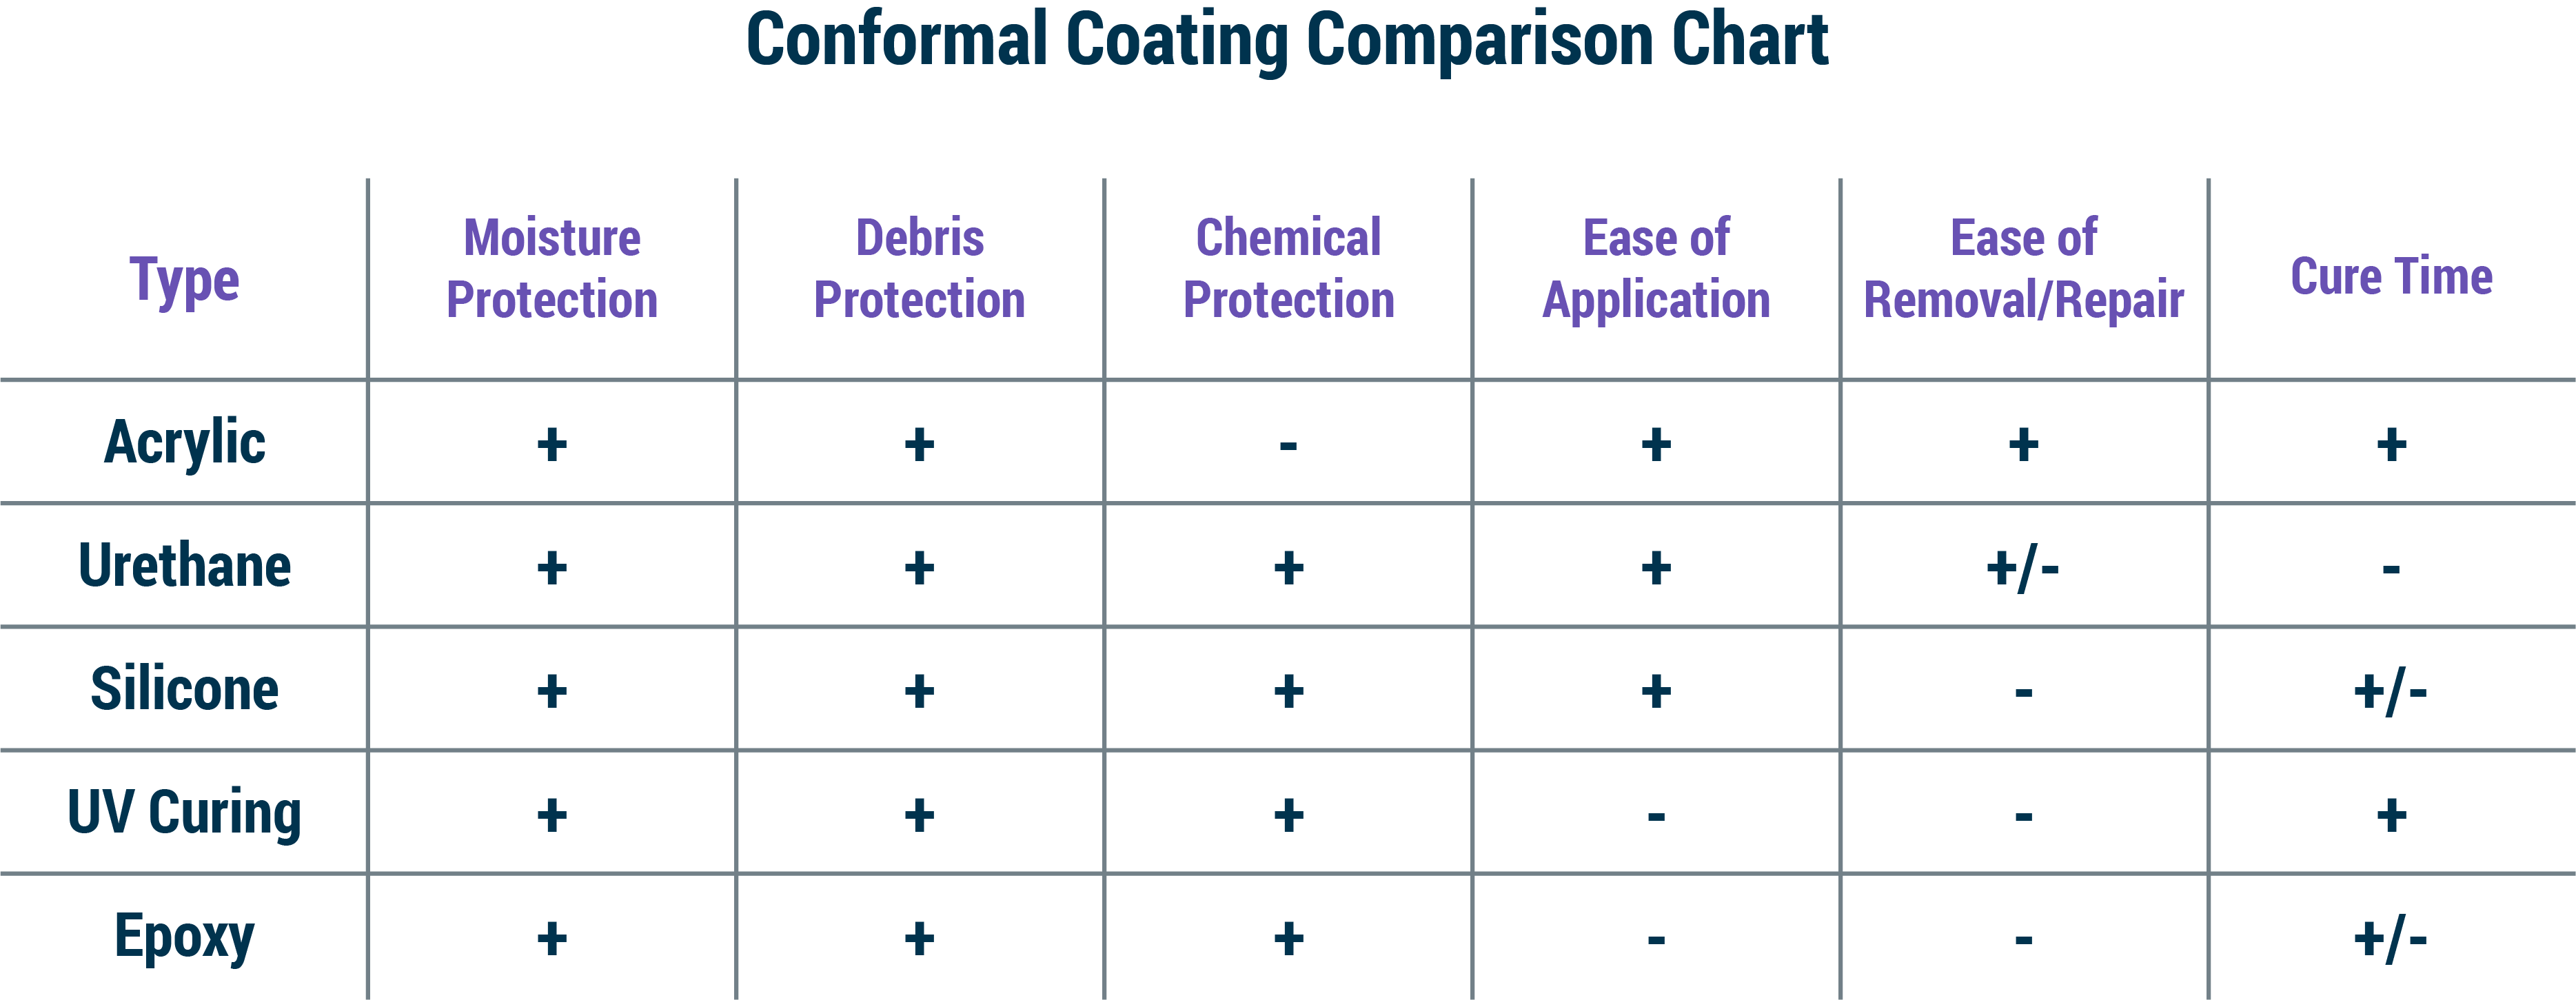 Conformal Coating Comparison Chart